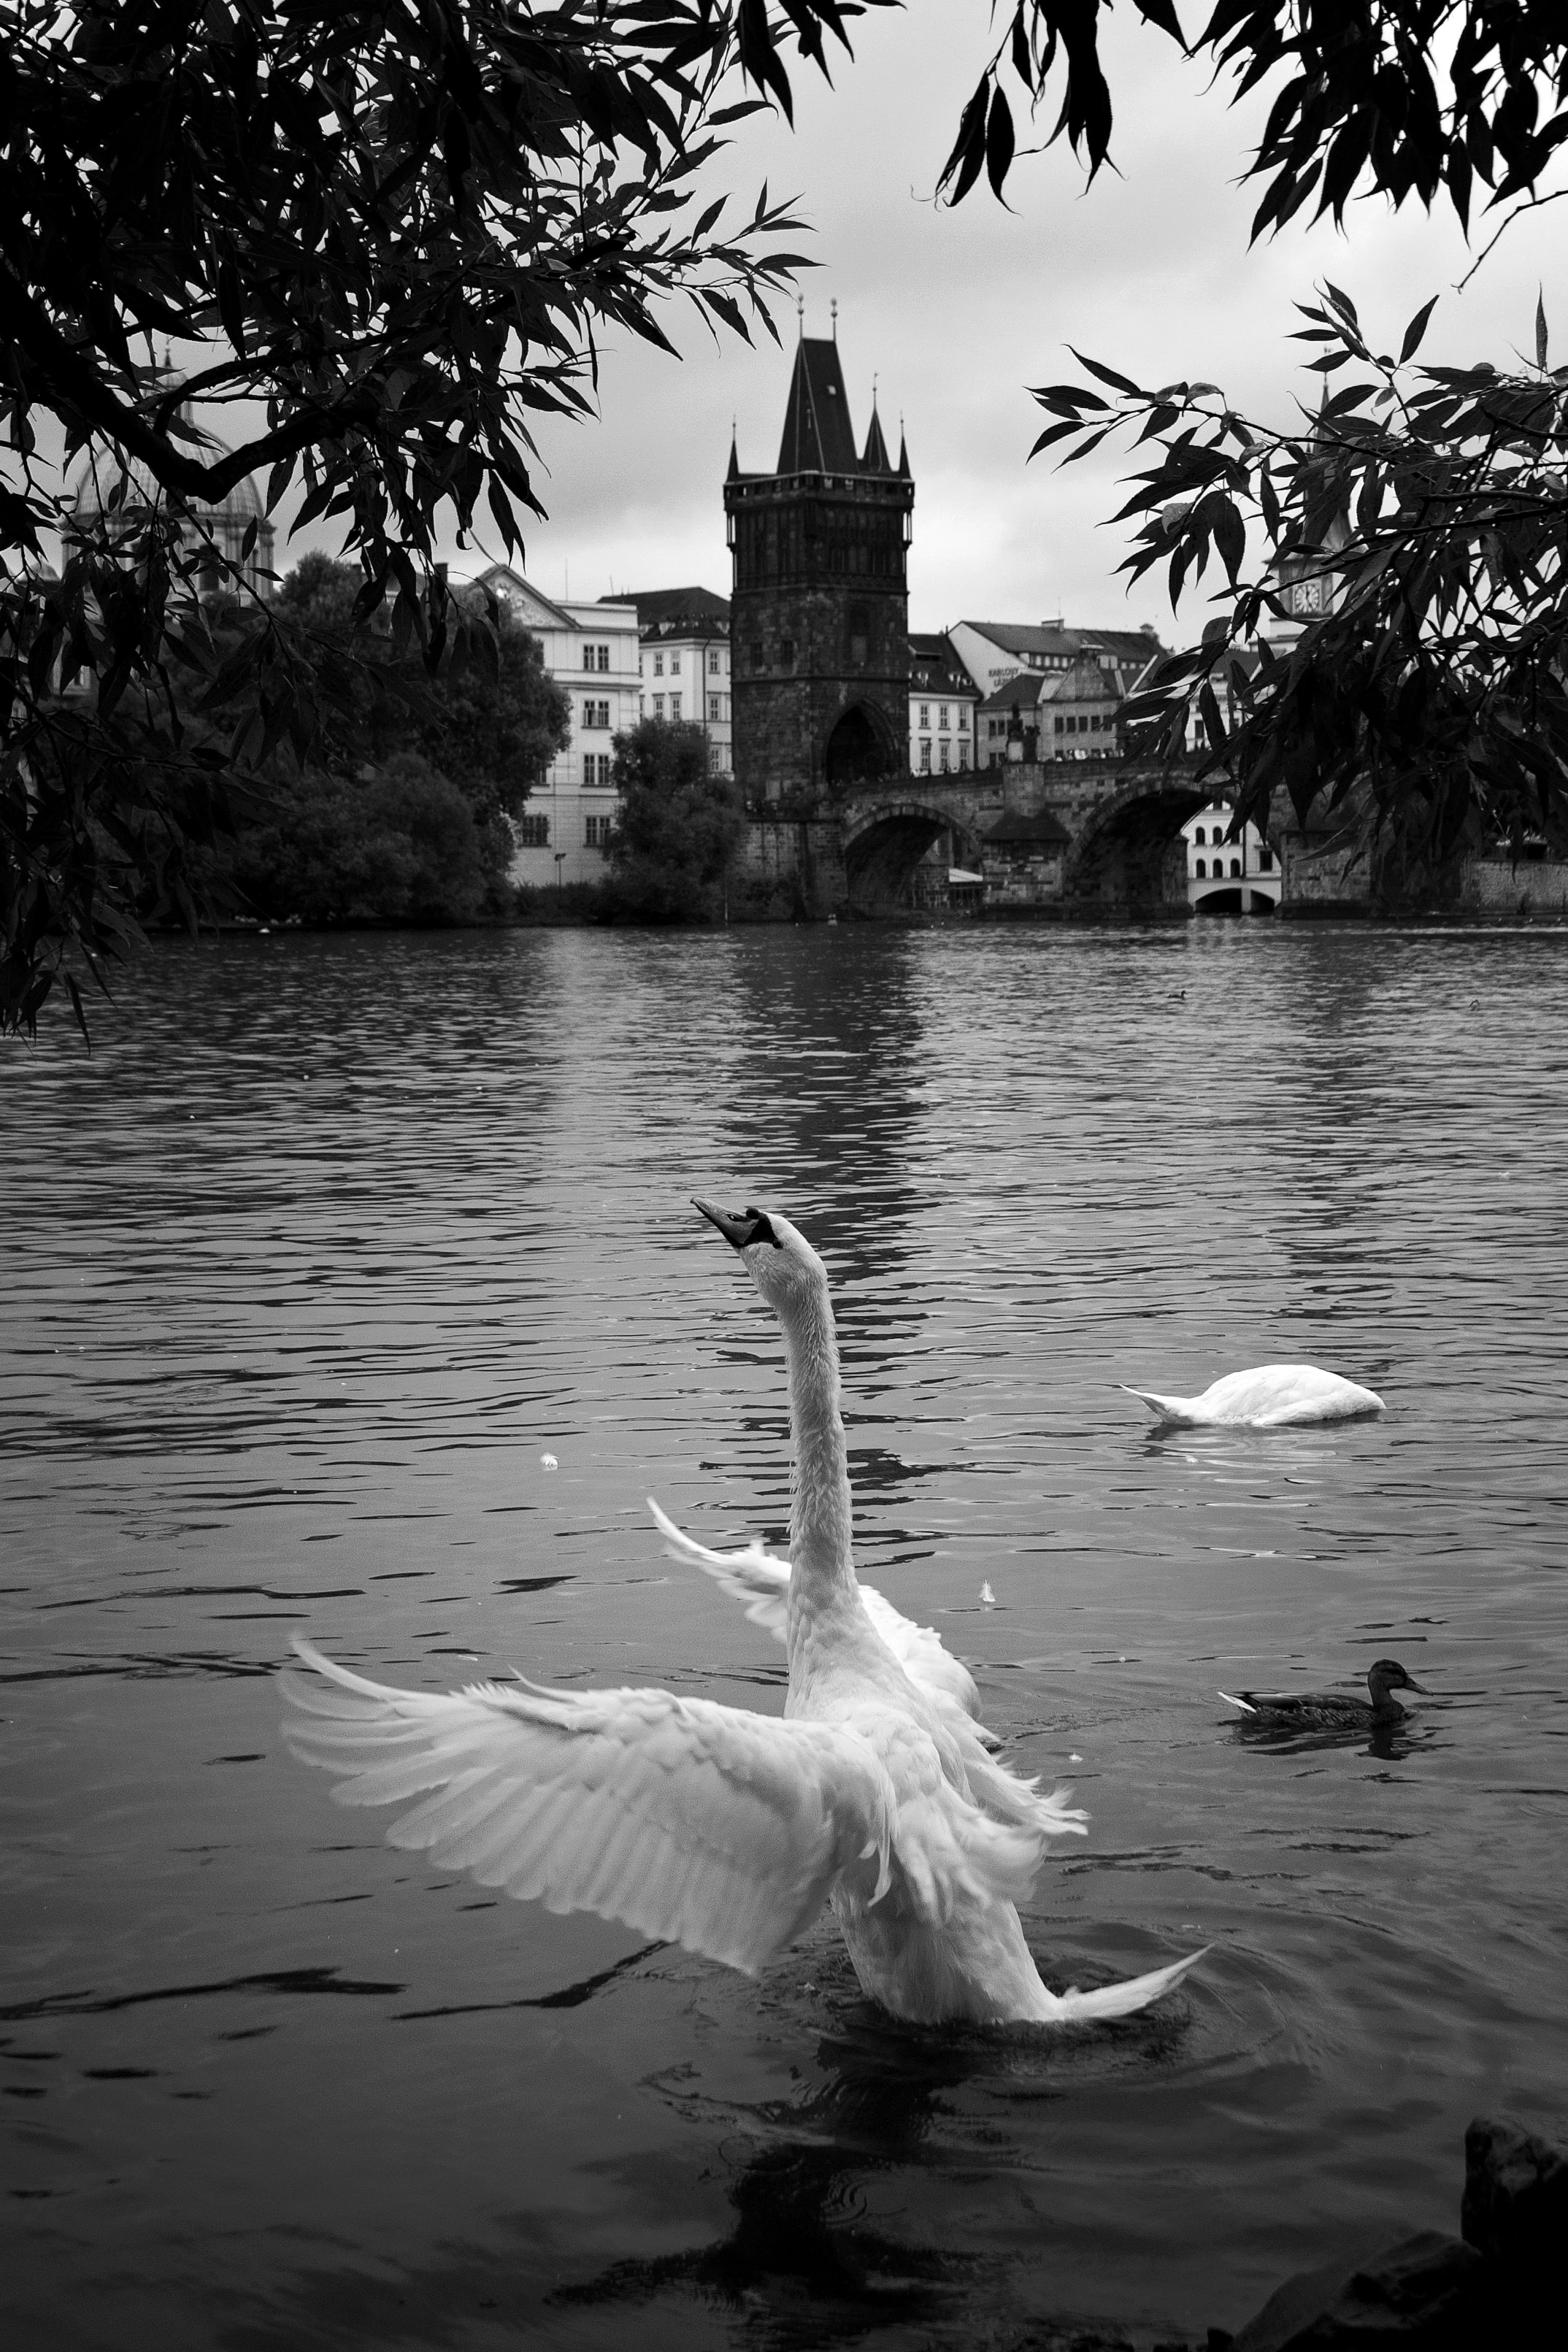 grayscale photography of mute swan on water near other swan and duck in distant of tower near buildings